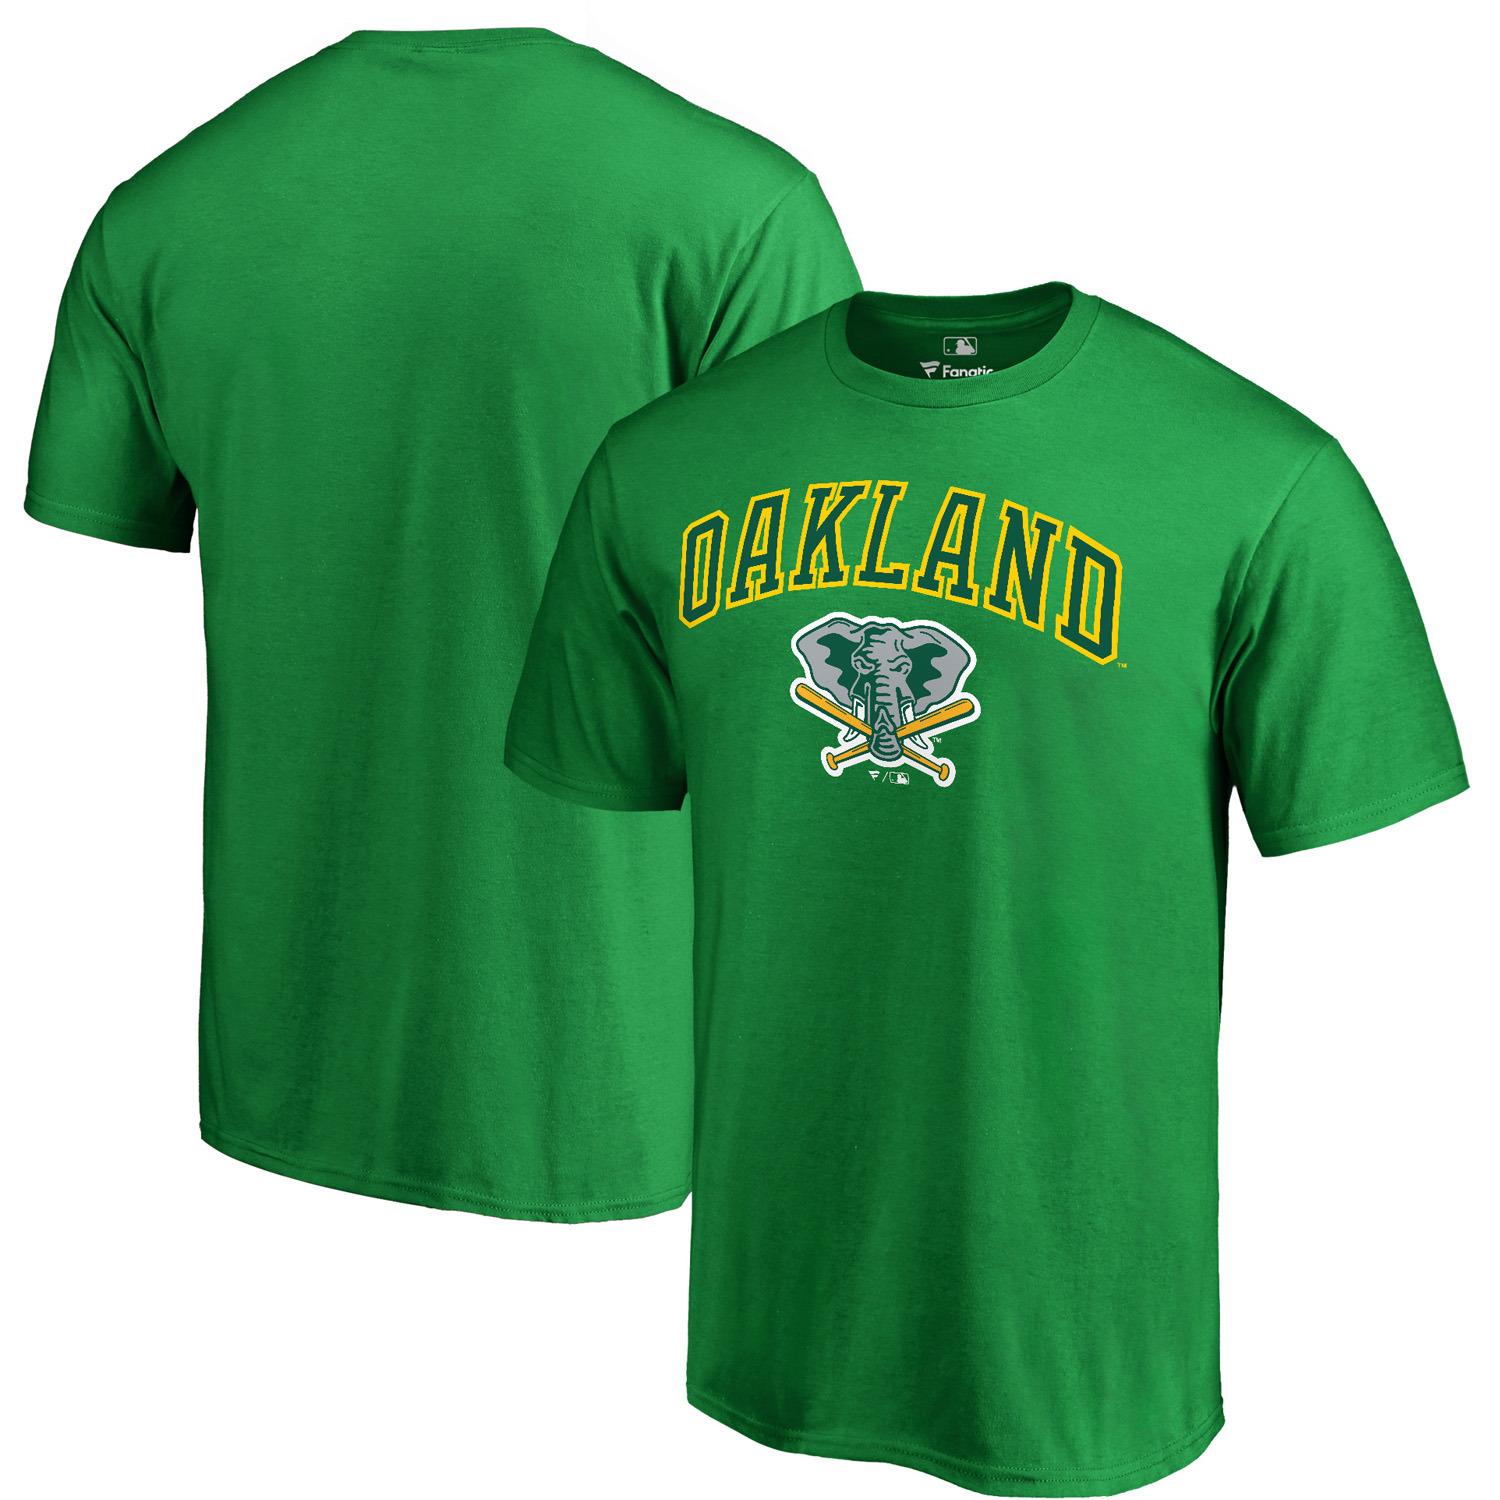 Oakland Athletics Fanatics Branded Cooperstown Collection Wahconah T-Shirt - Kelly Green